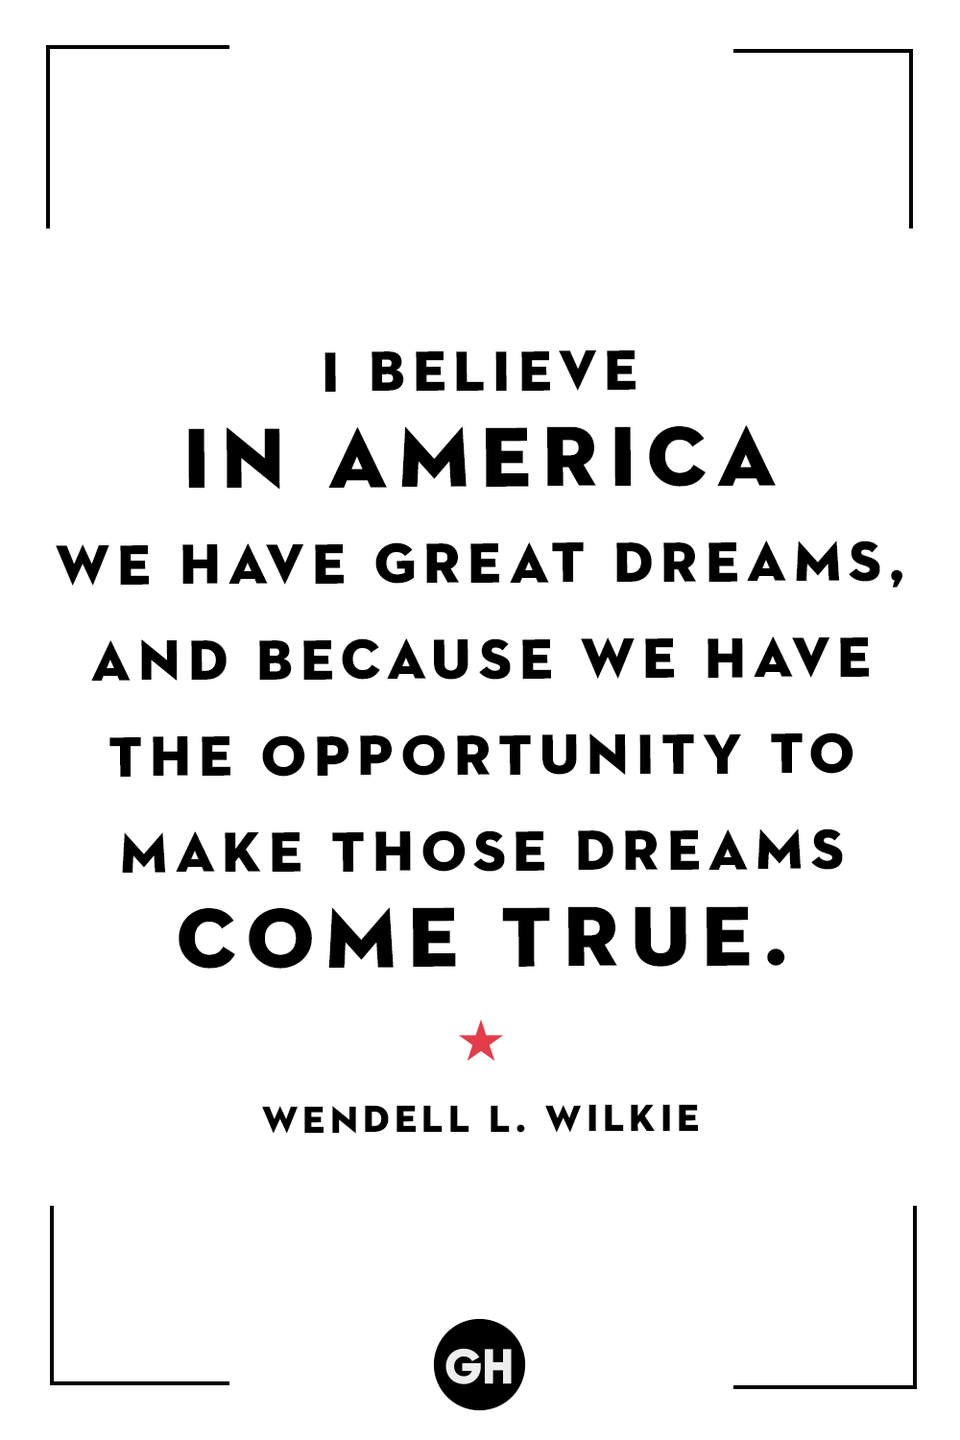 <p>I believe in America because we have great dreams, and because we have the opportunity to make those dreams come true.</p>